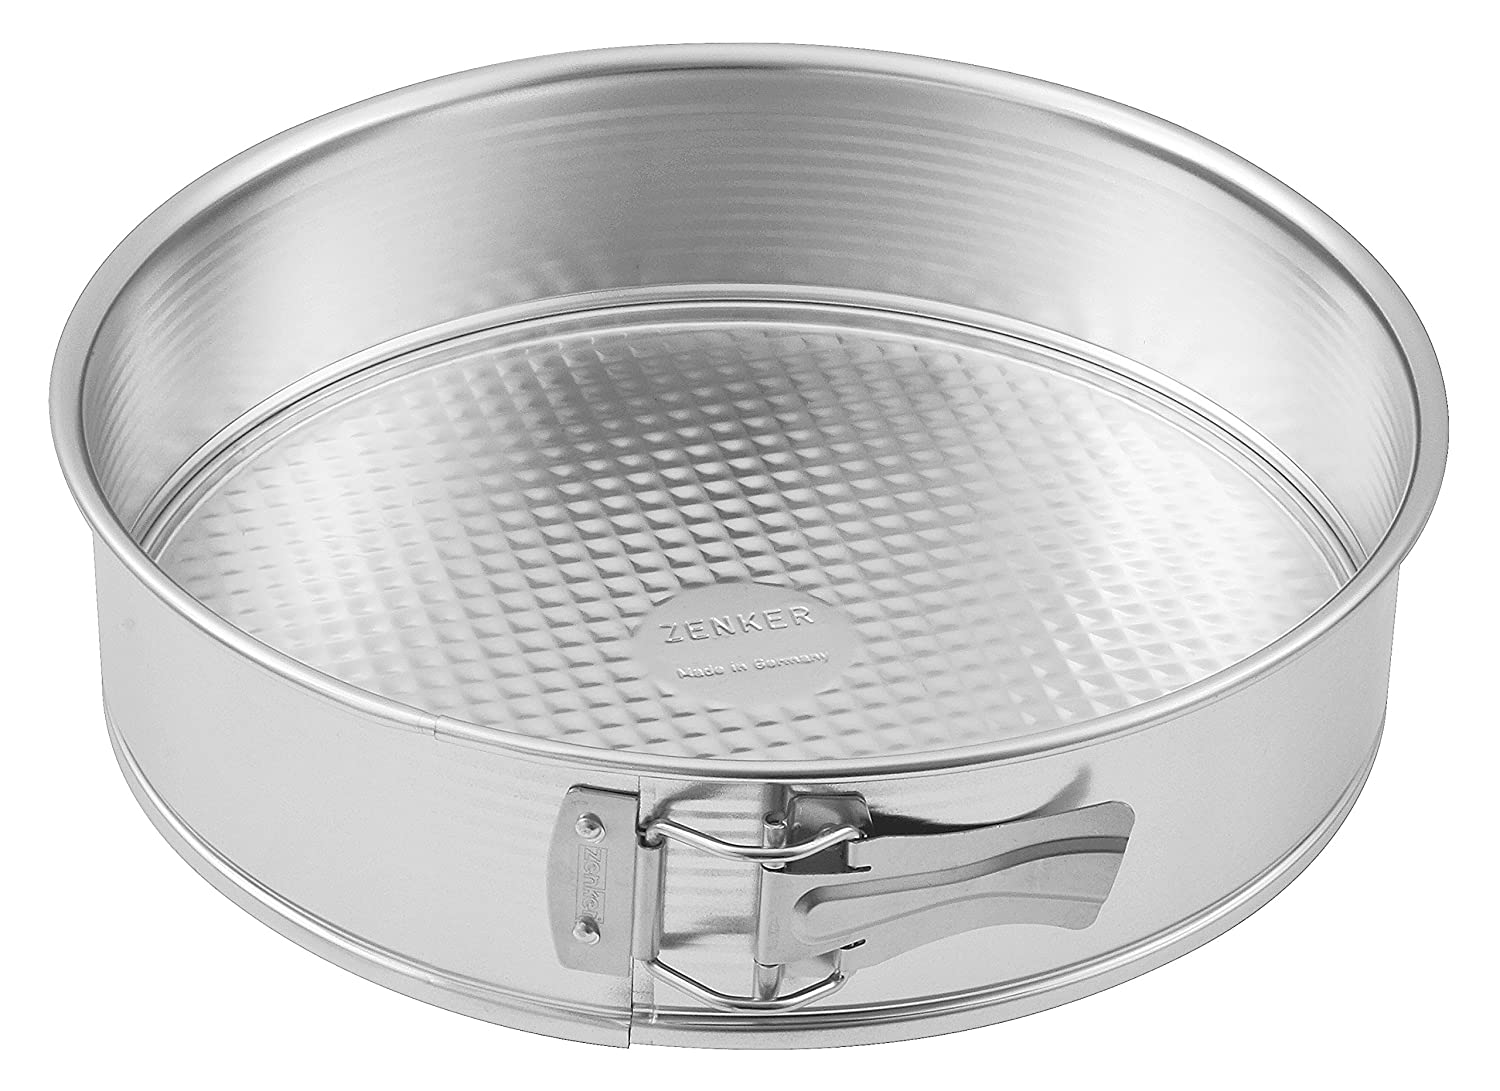 Zenker Tin Plated Steel Springform Pan, 7-Inch Z6801